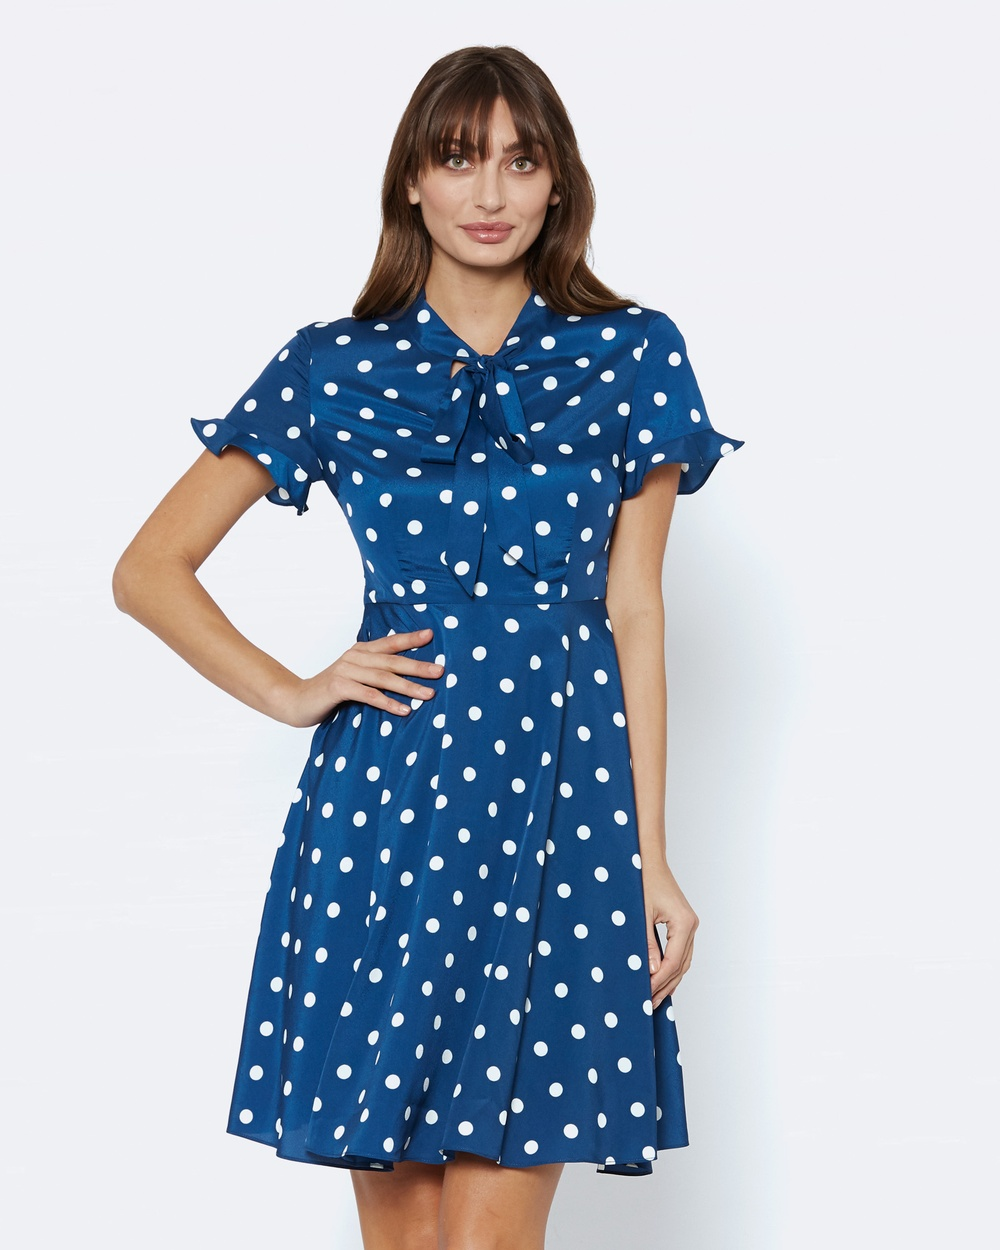 Alannah Hill Bespeckled Dress Printed Dresses Blue Bespeckled Dress